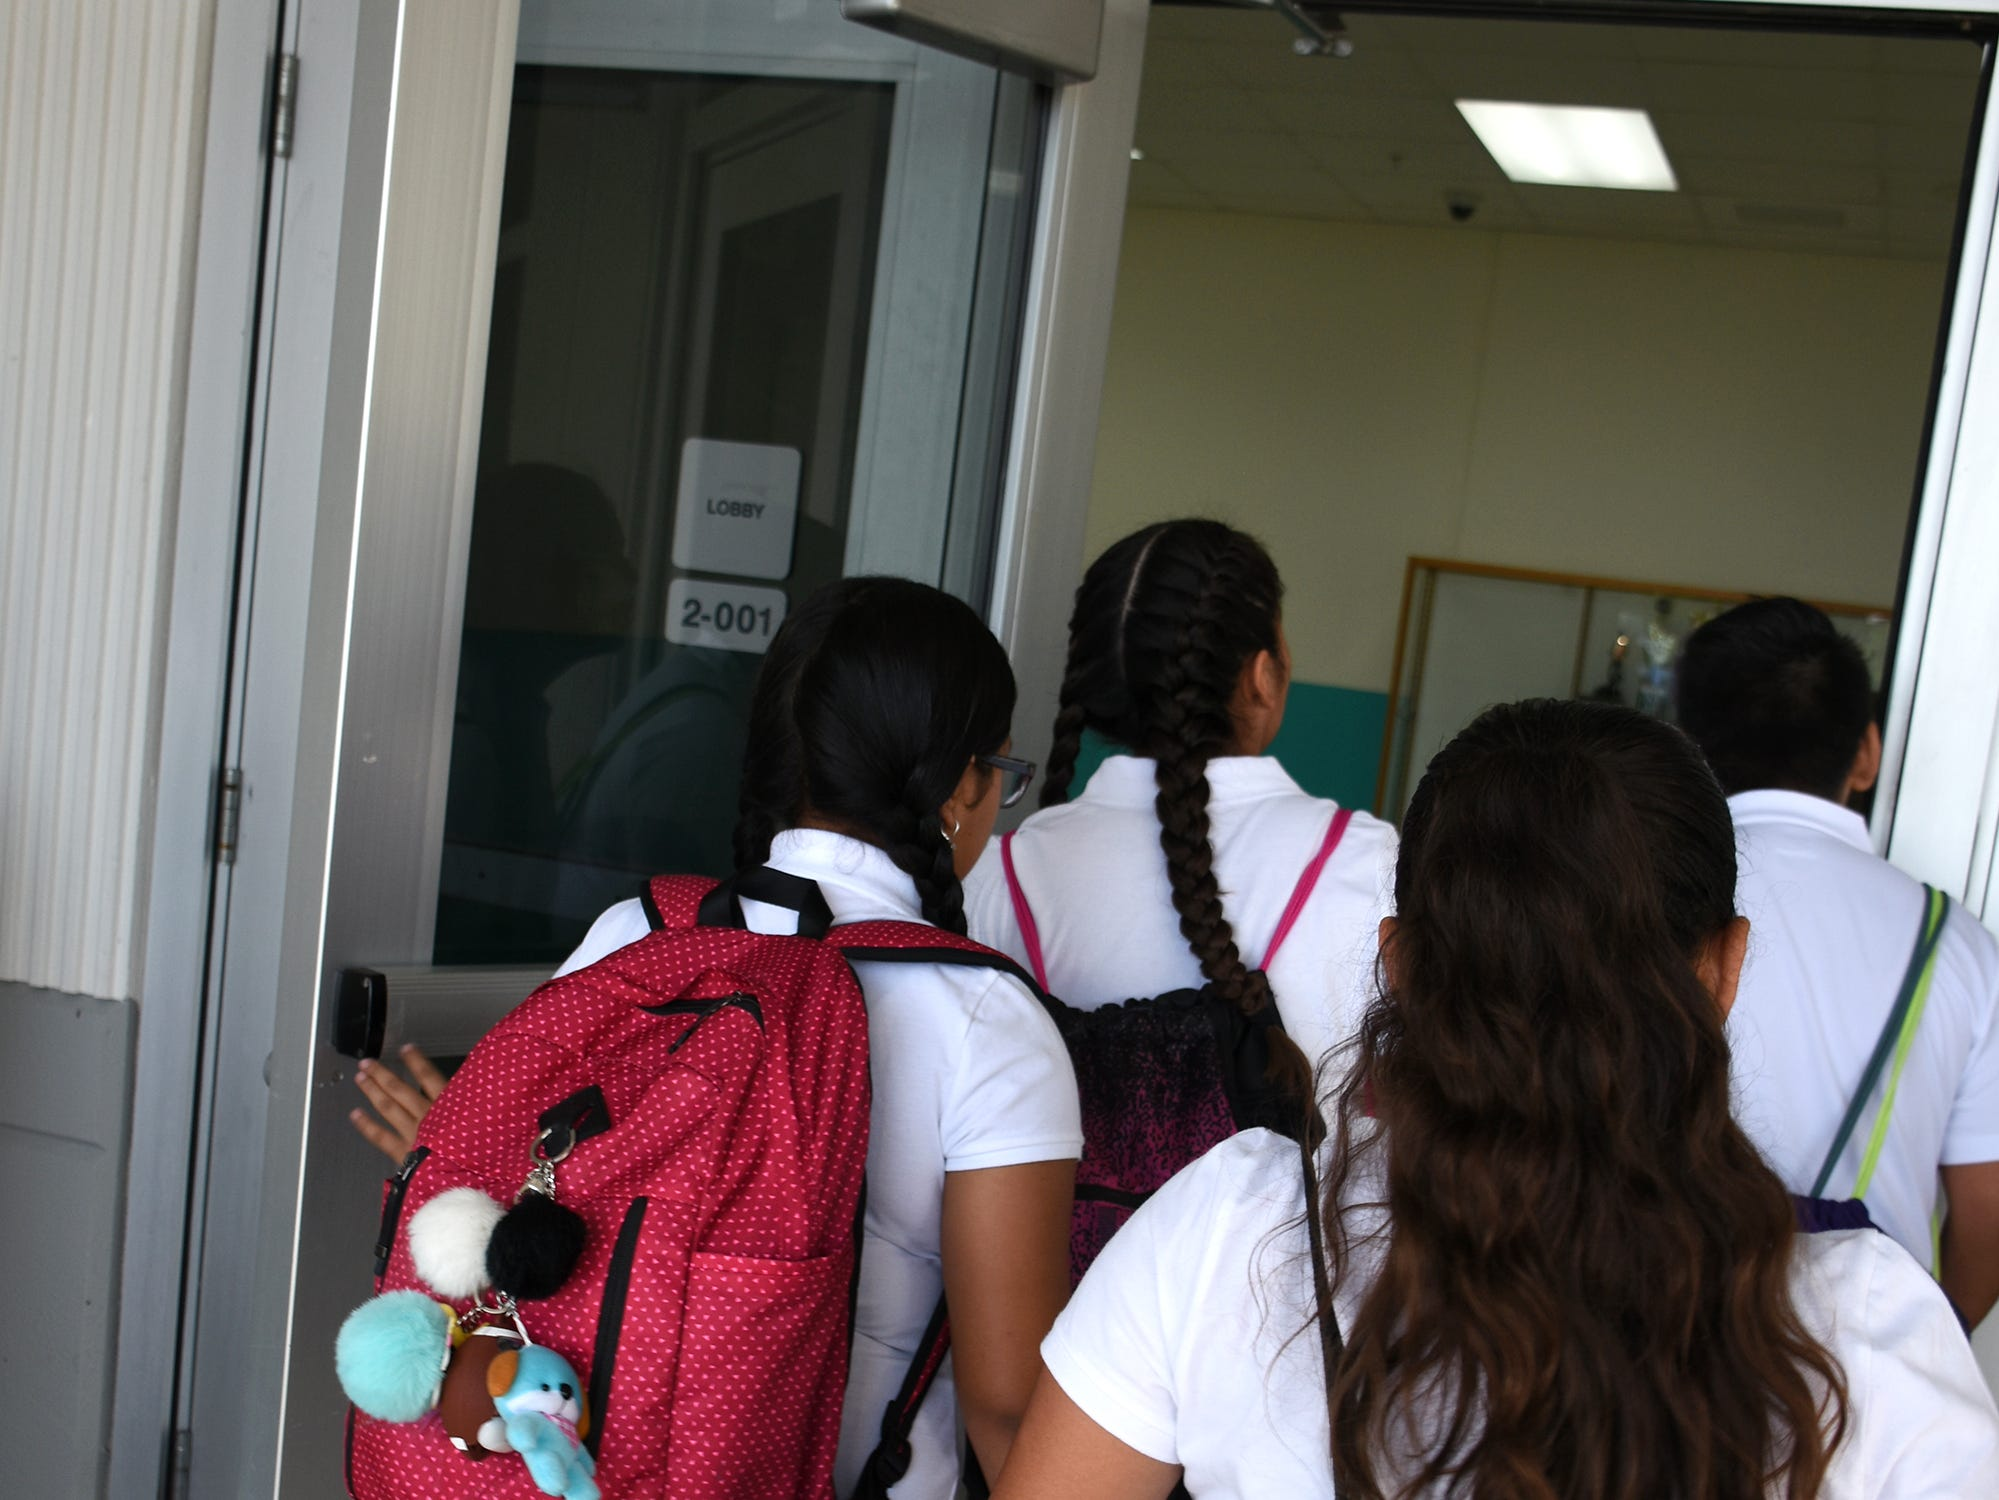 Students stream into school at Marco Island Charter Middle School. Marco Island students, along with all of Collier County, returned to school for the first day of classes in the new school year on Wednesday.